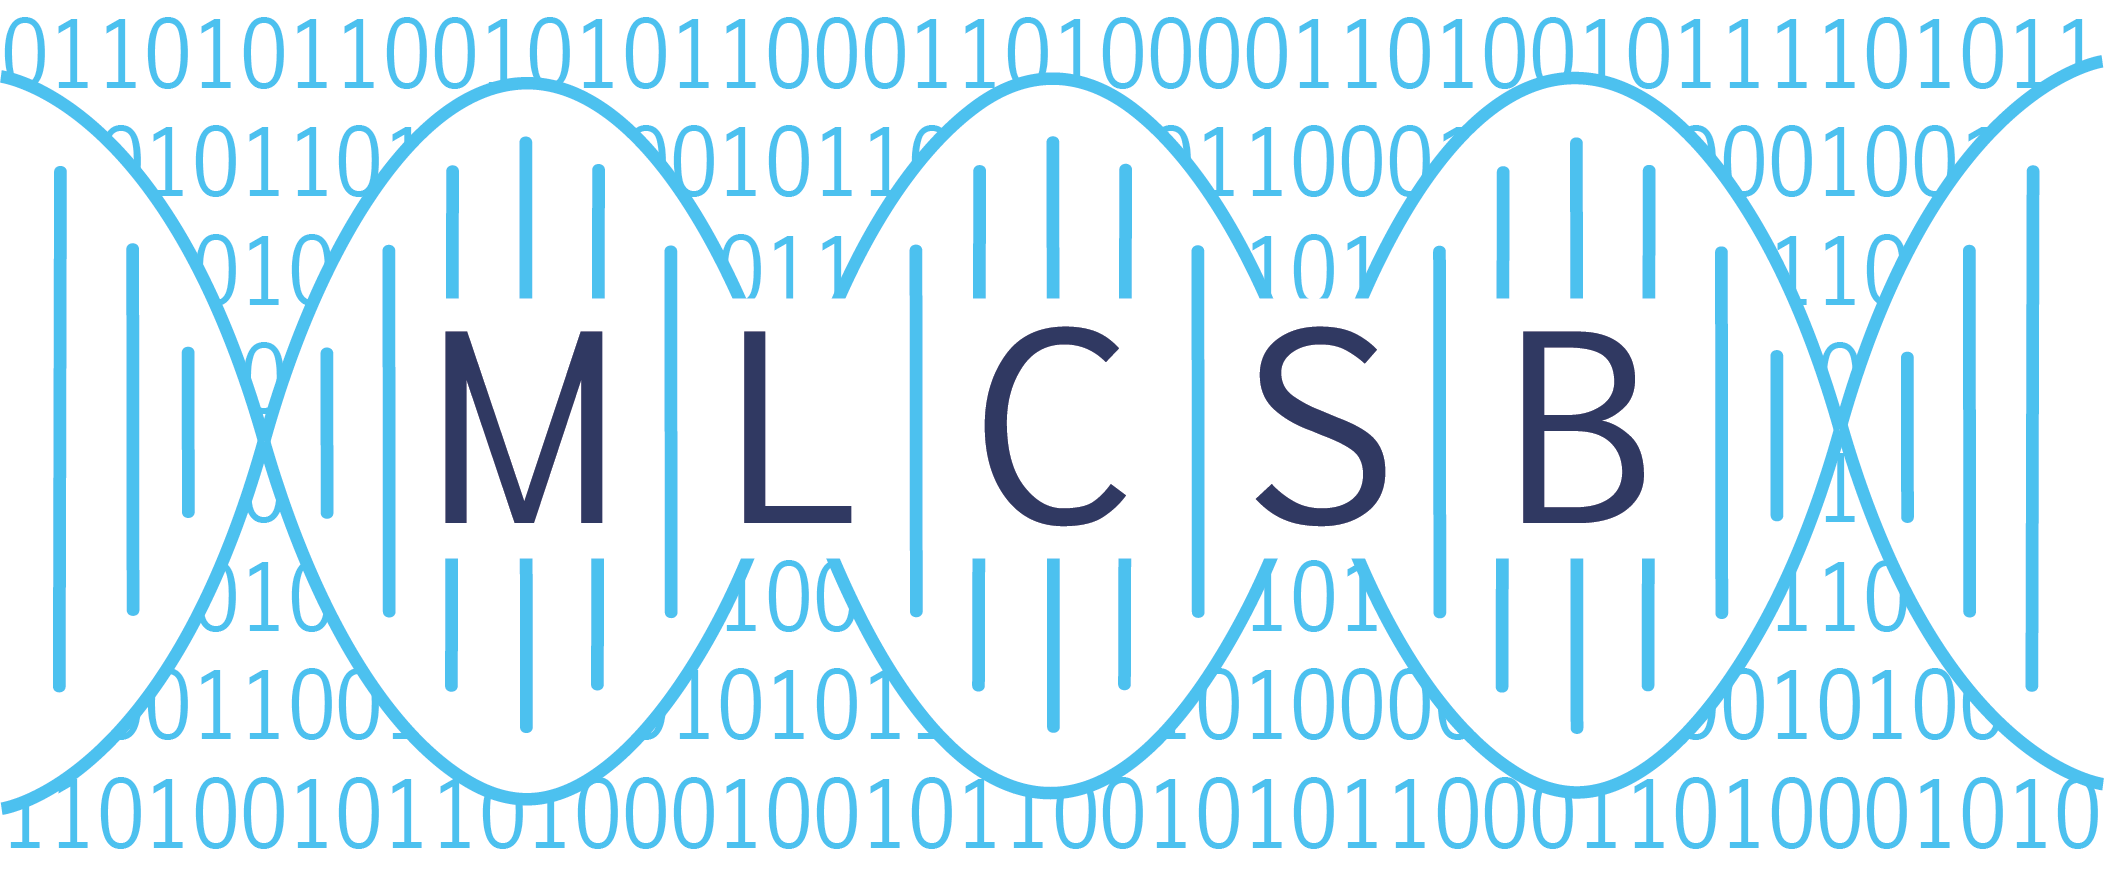 MLCSB: Machine Learning in Computational and Systems Biology